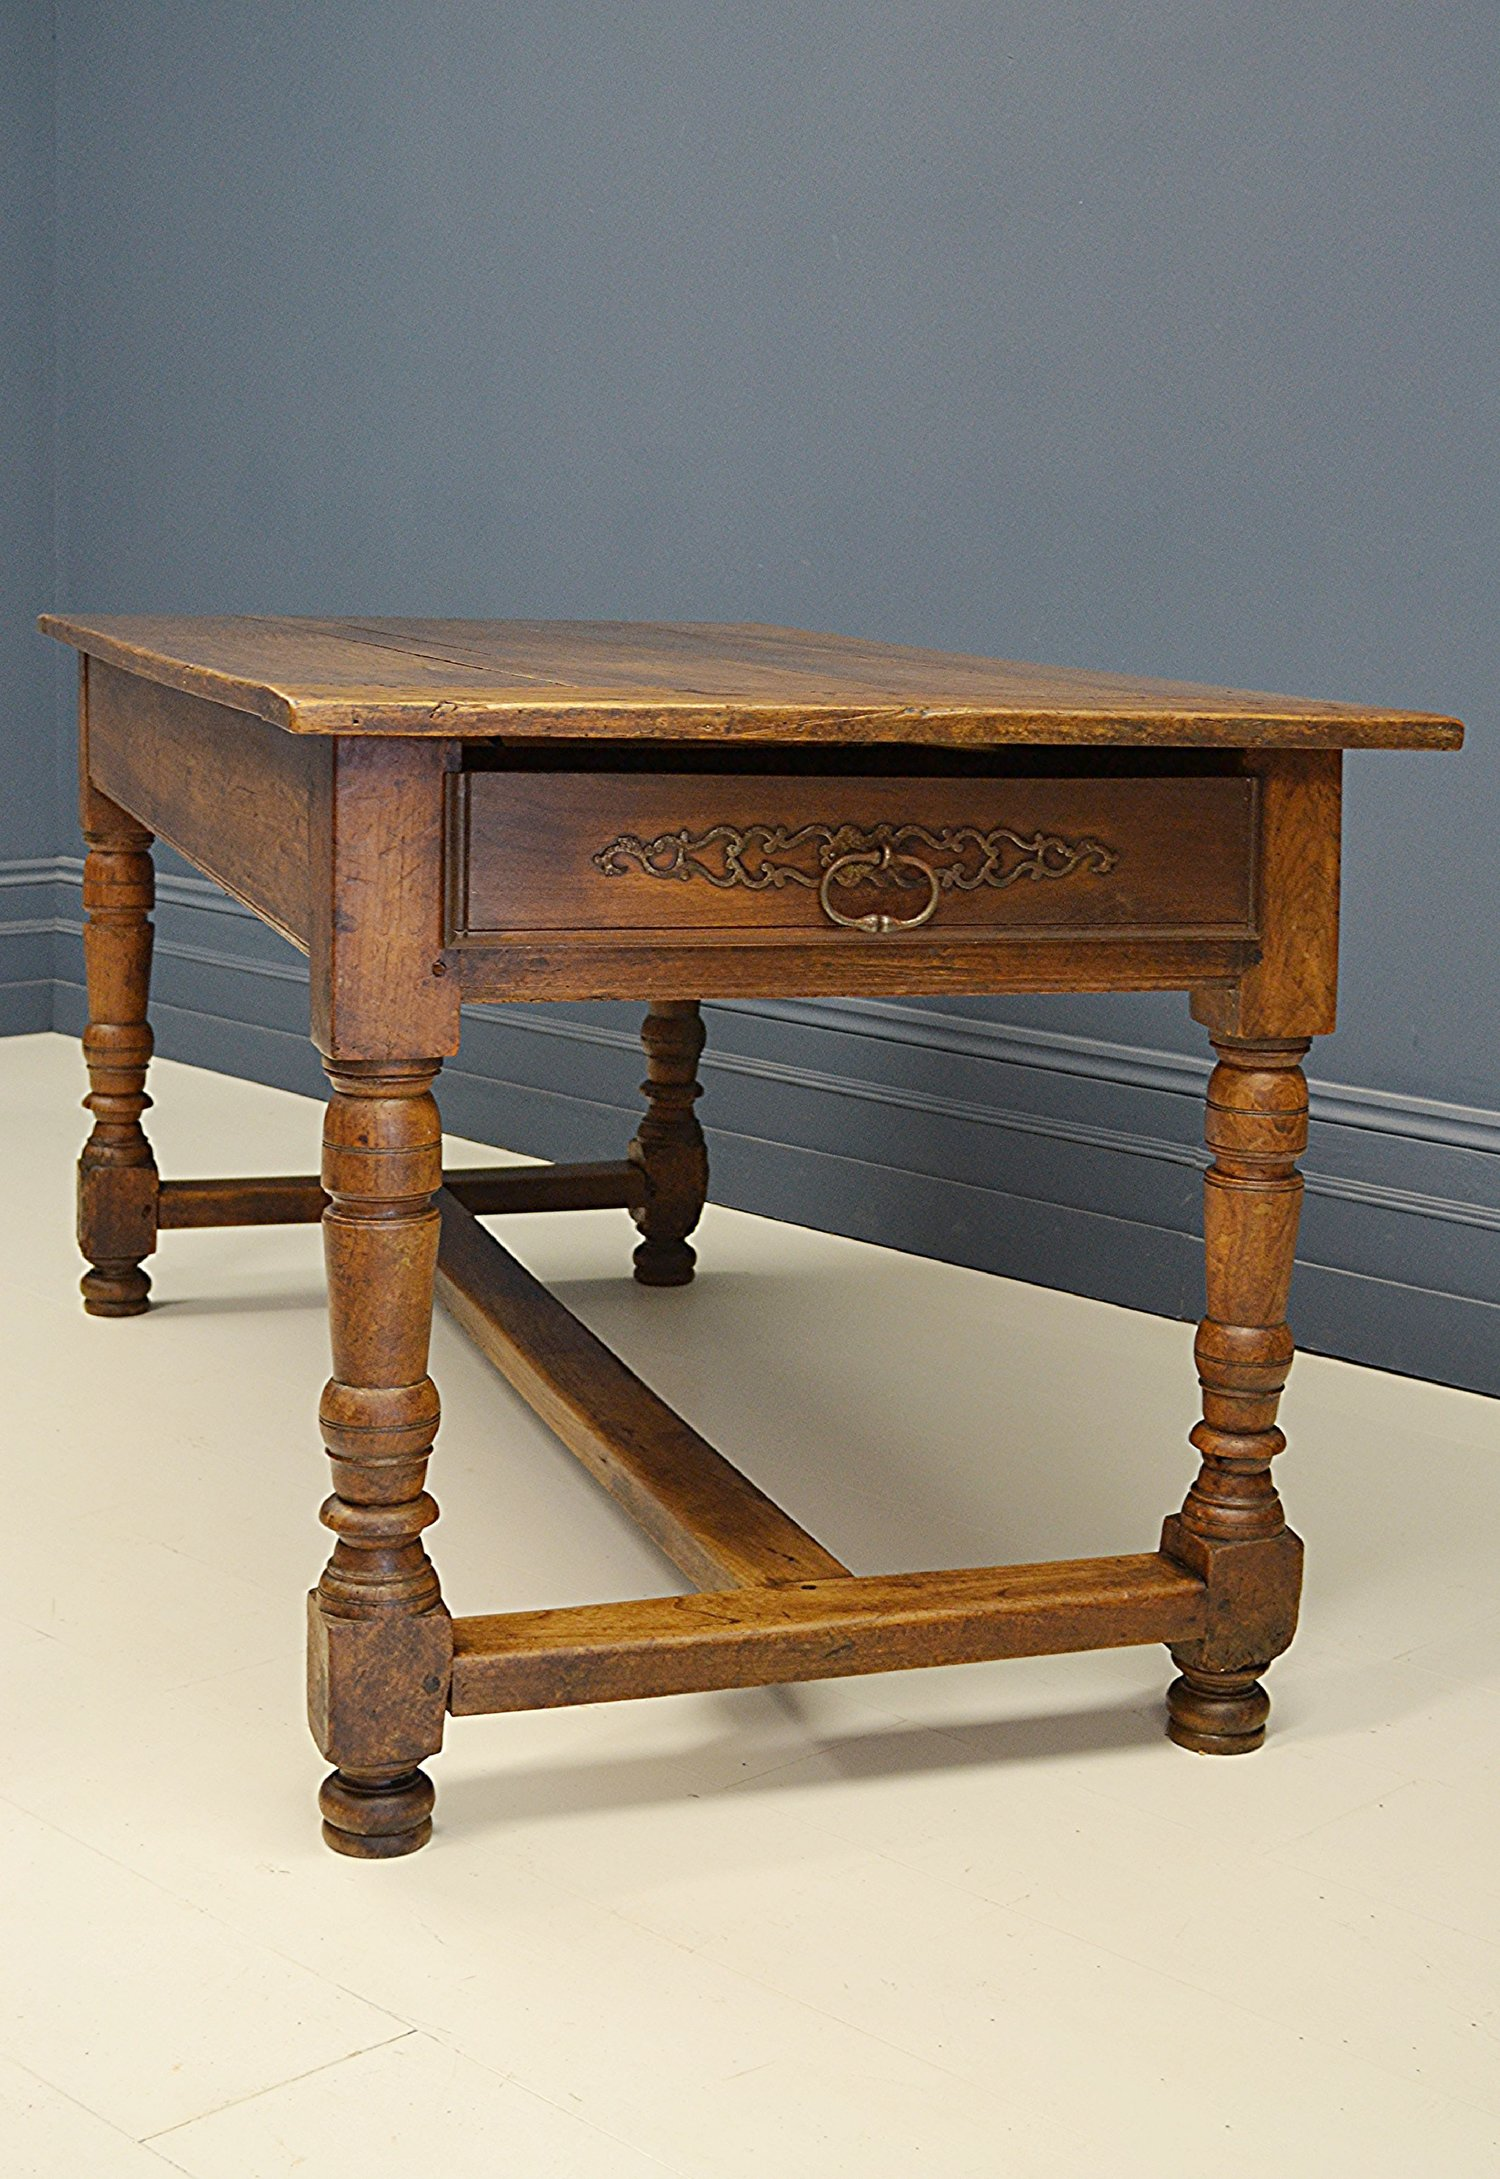 19th Century French Oak Dining Table Christian Lawrence Interiors